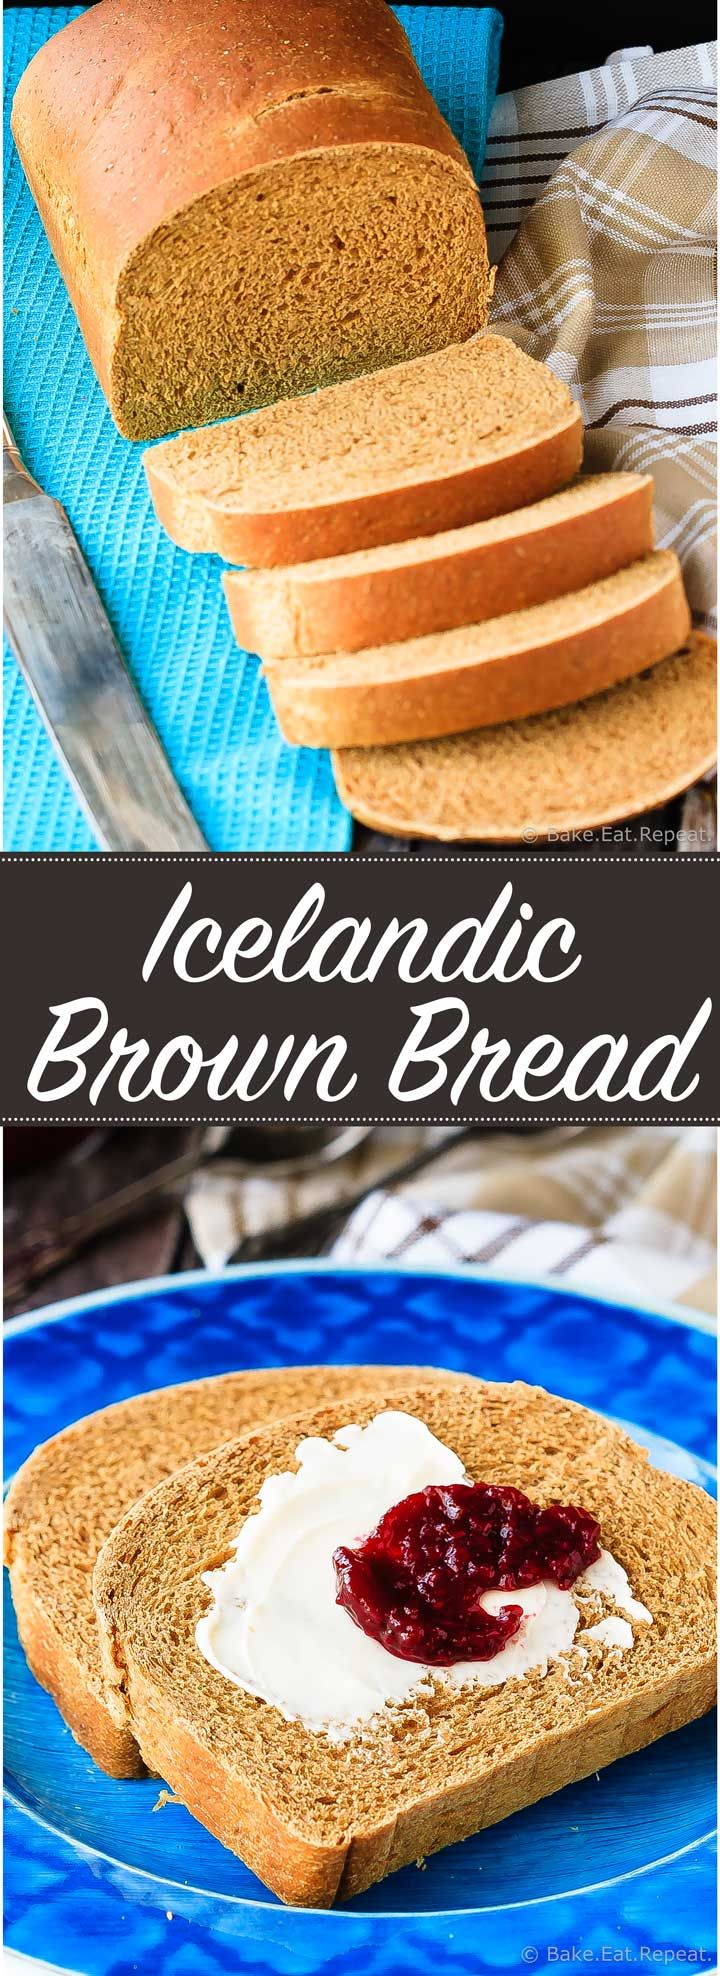 Icelandic Brown Bread - Easy to make, slightly sweet, soft and perfect for your morning toast - this Icelandic brown bread is amazing. So good with jam for breakfast, you need to try it!